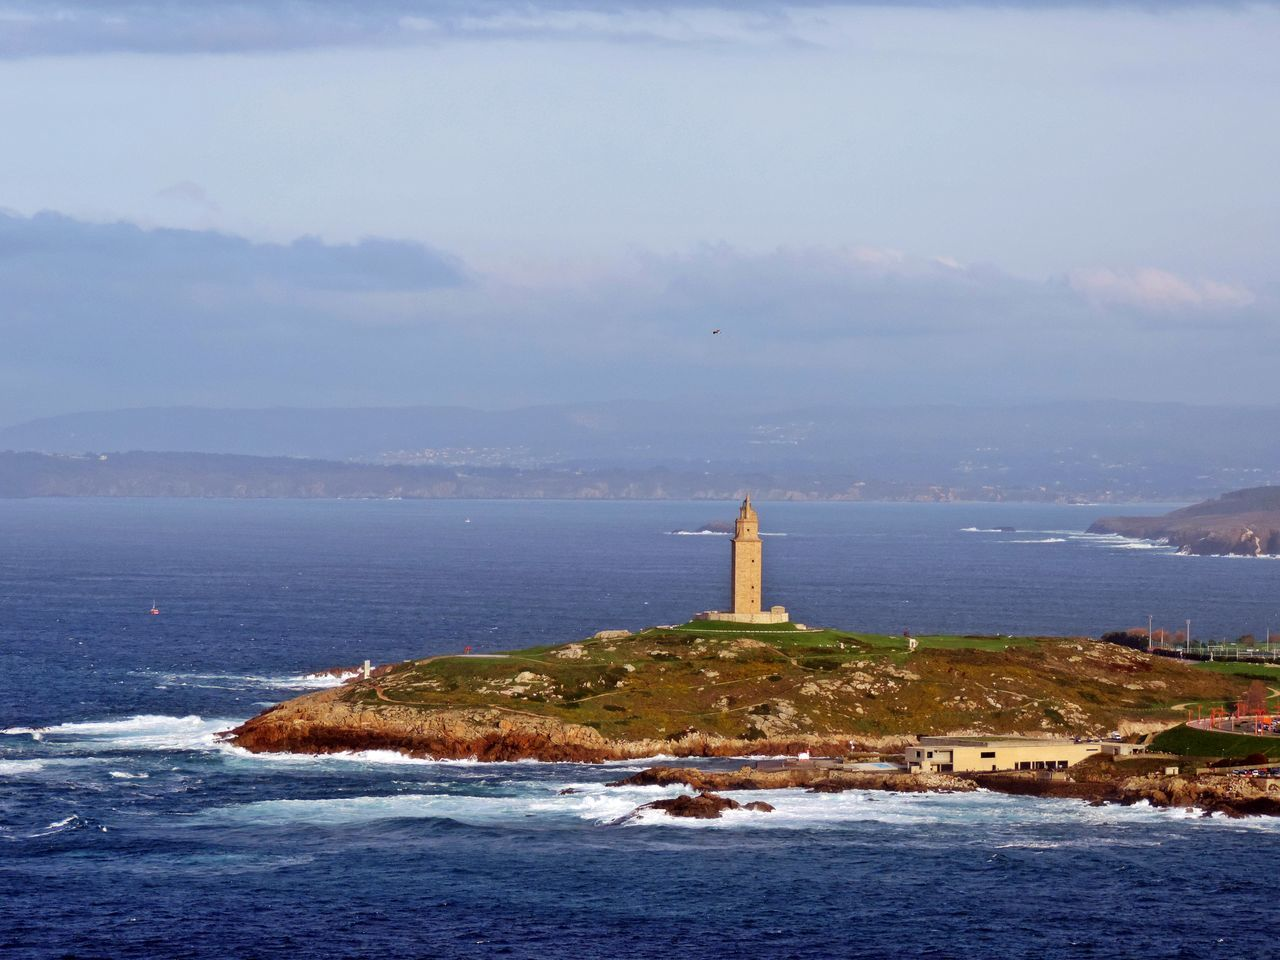 Lighthouse Tower Building Exterior Travel Destinations Sea Coastline No People Sunset Nature Outdoors Landscape Sky Day TorreDeHercules City Acoruña